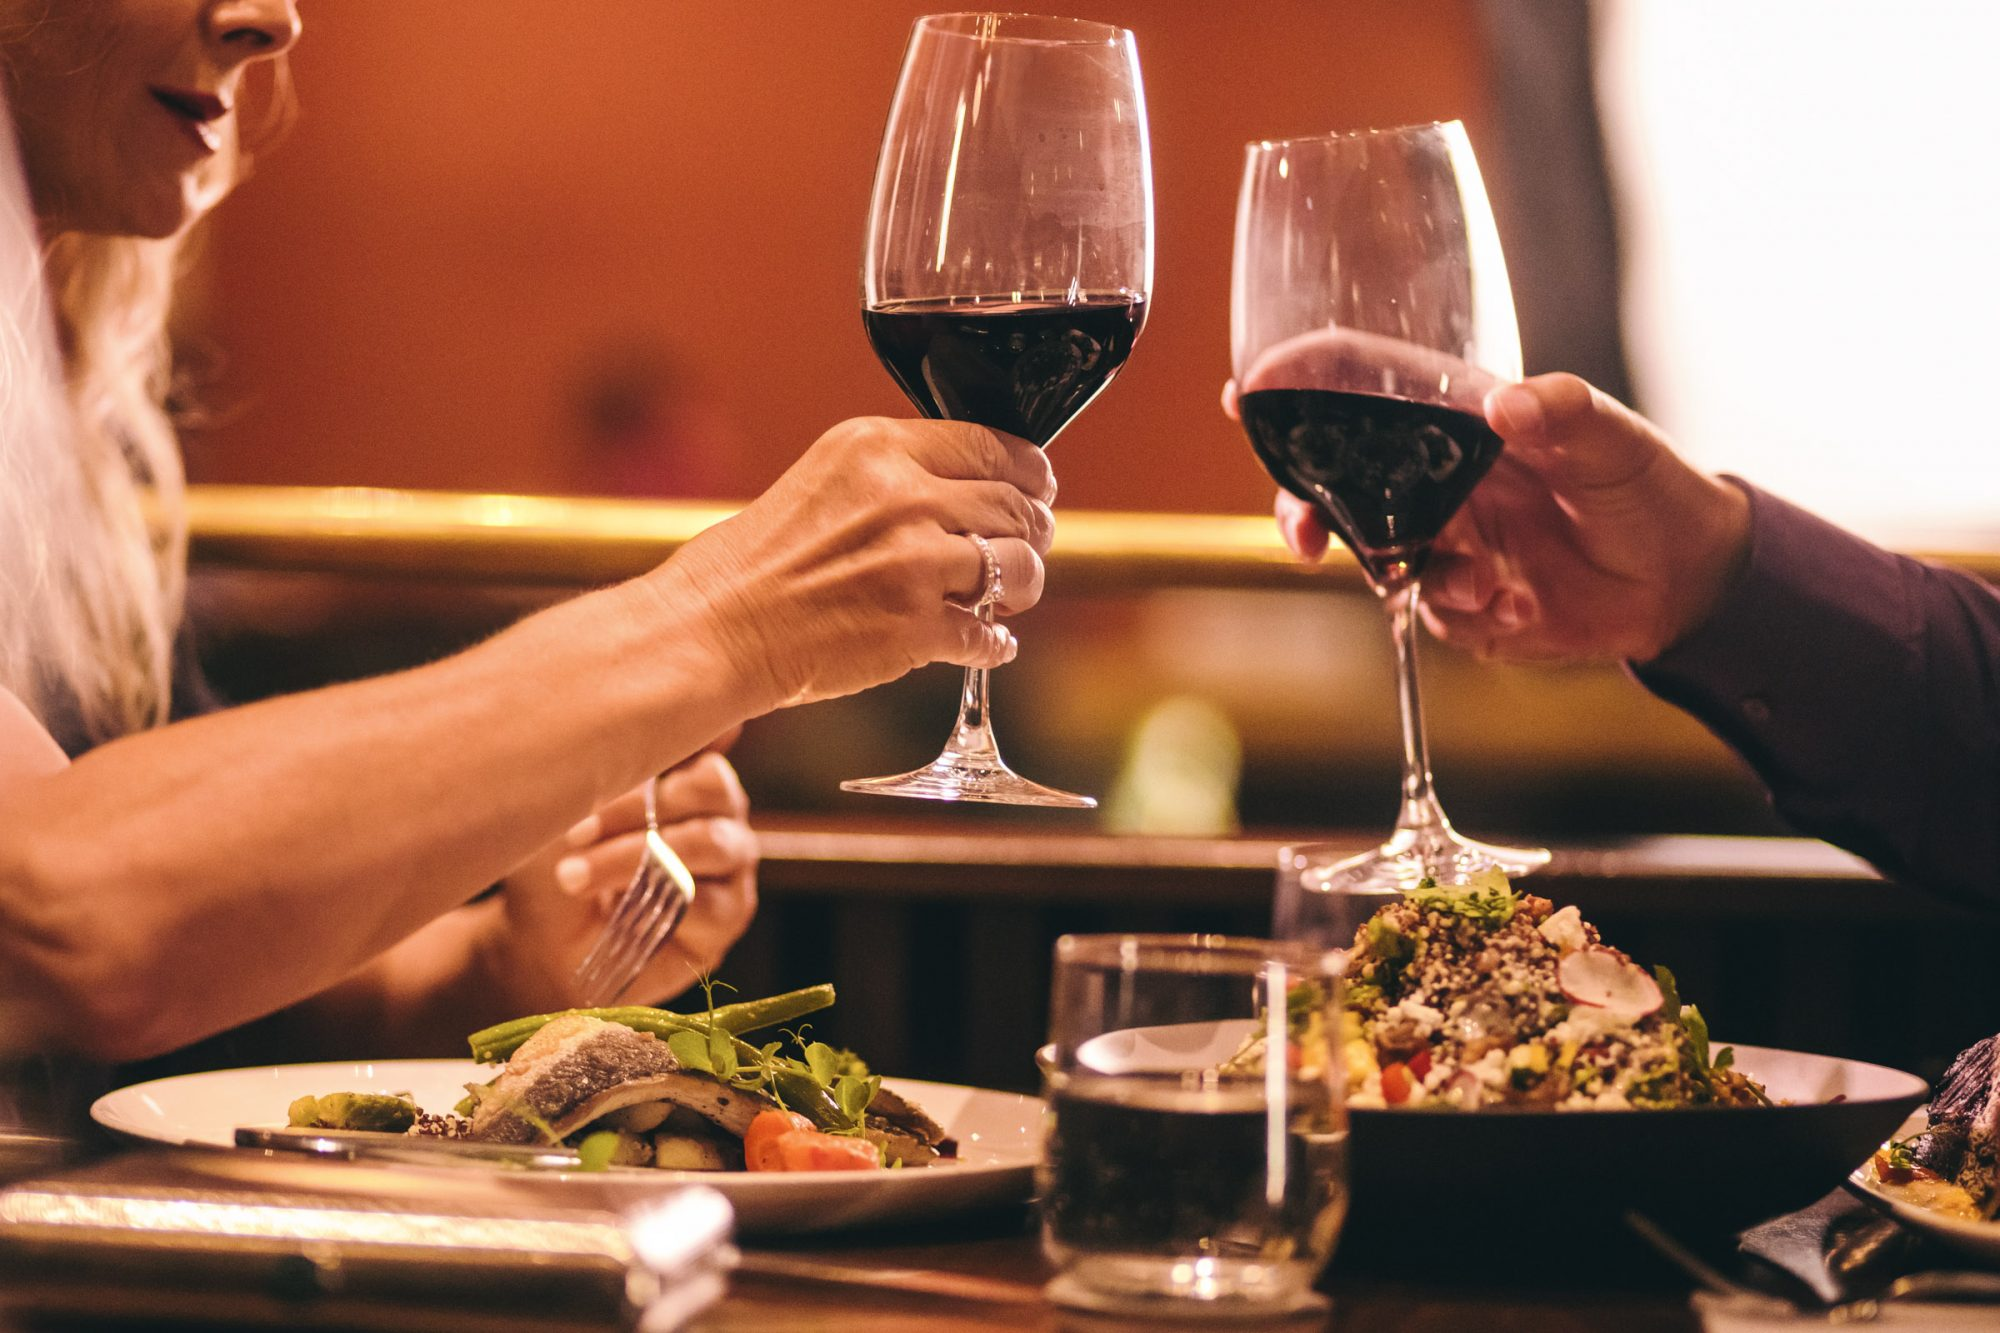 toasting with wine at gourmet restaurant